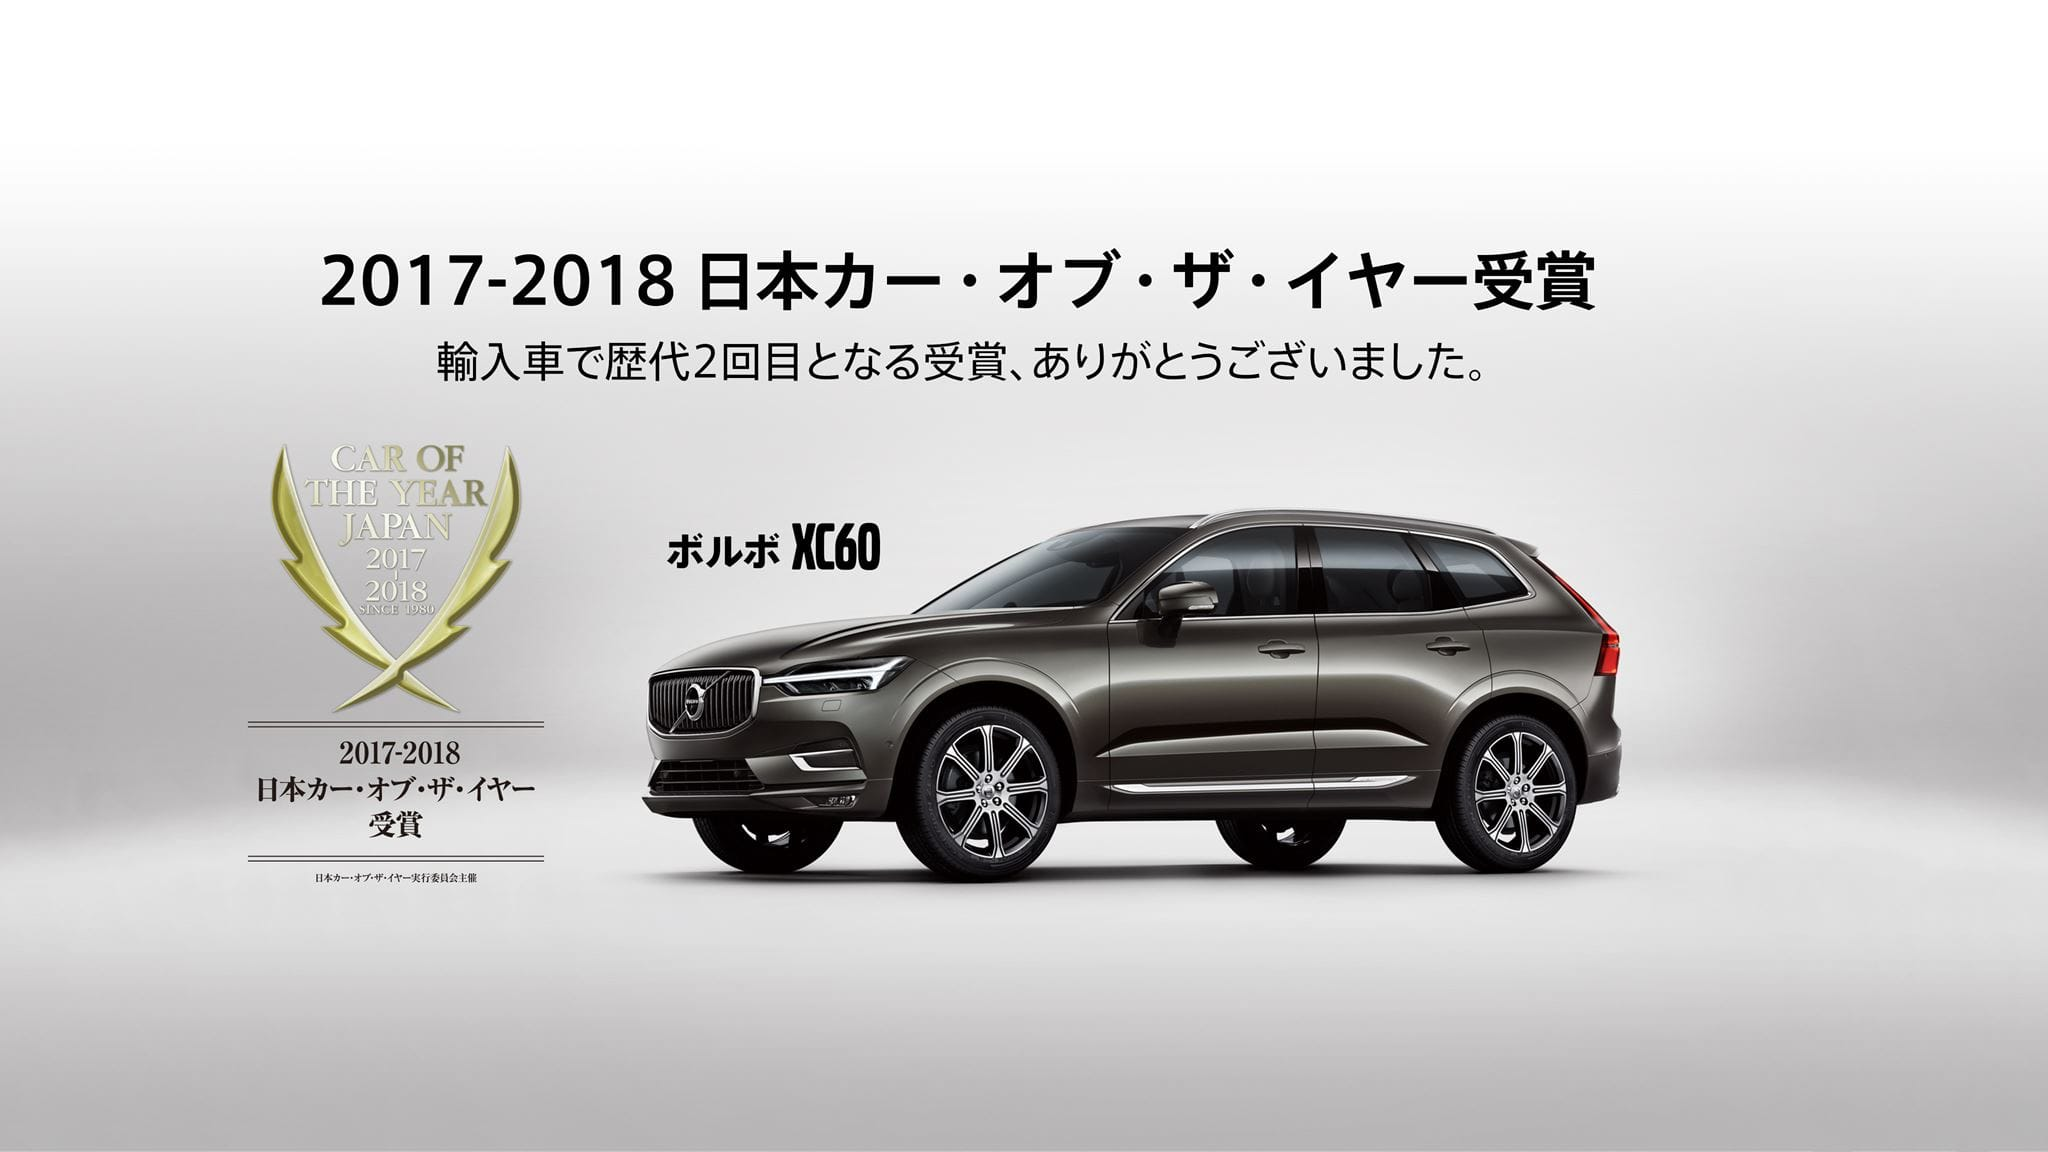 XC60 CAR OF THE YEAR JAPAN 2017-2018